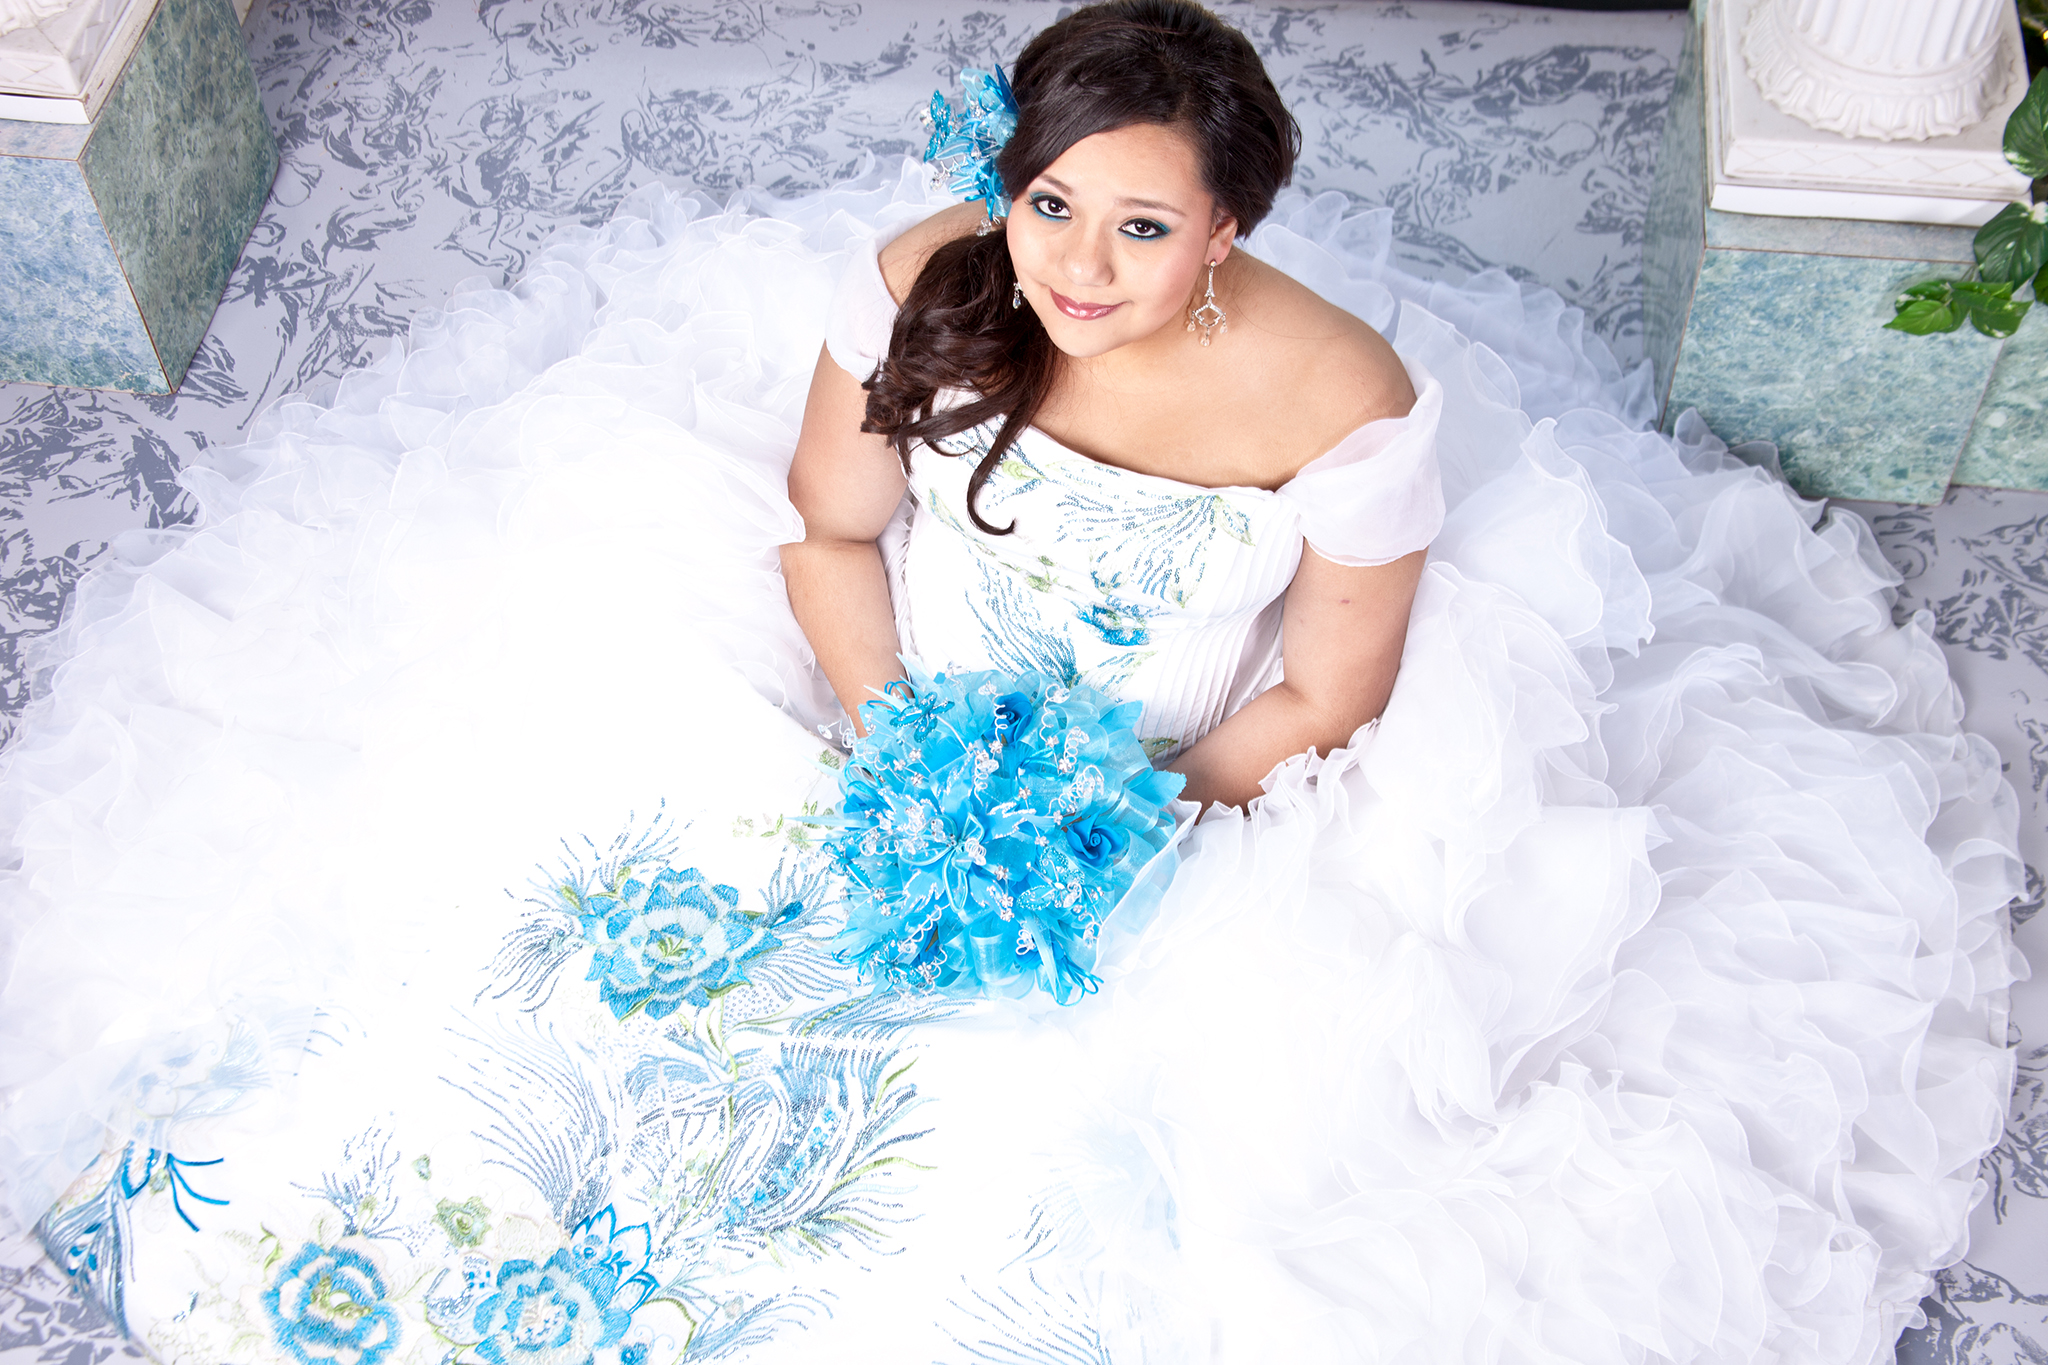 Quinceanera's photographed by All Digital Studios